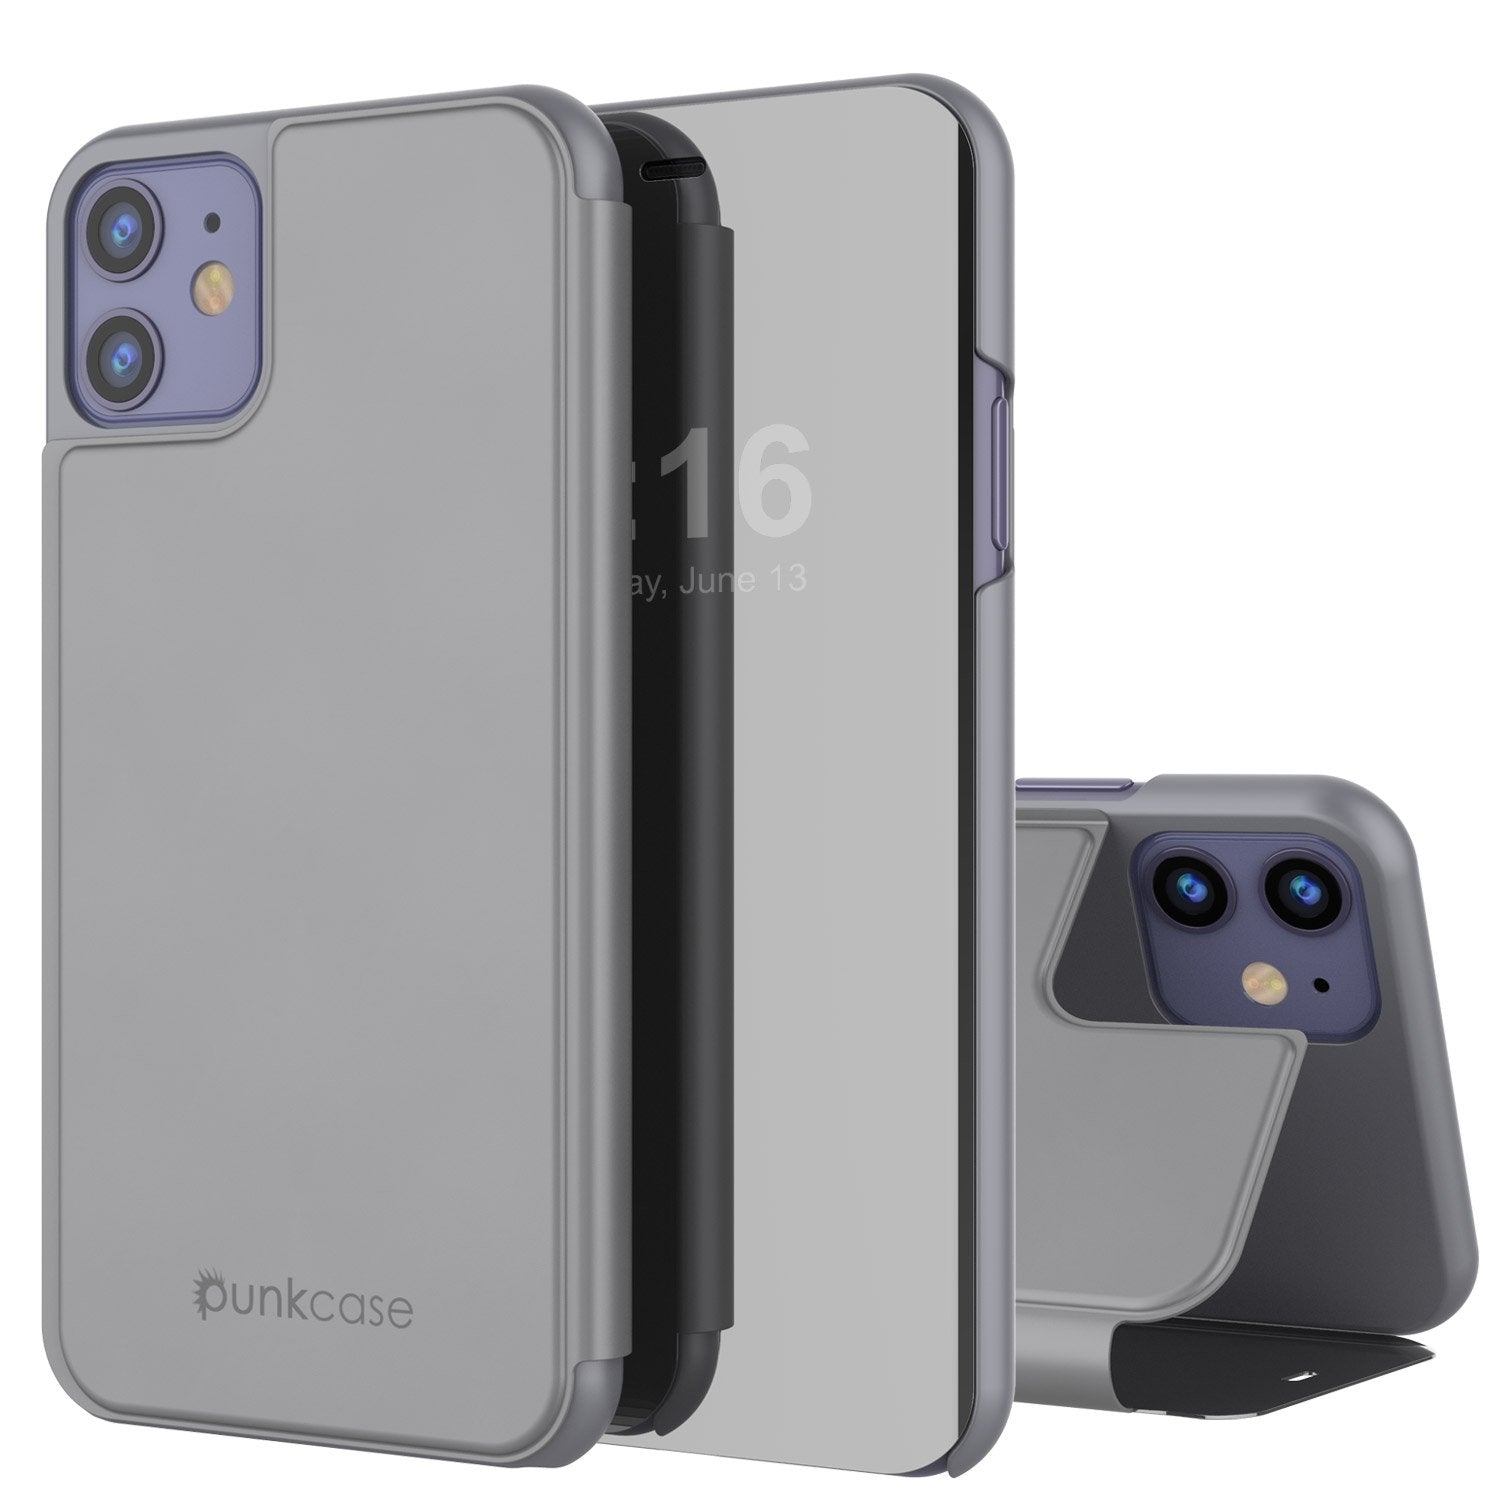 Punkcase iPhone 11 Pro Reflector Case Protective Flip Cover [Silver]